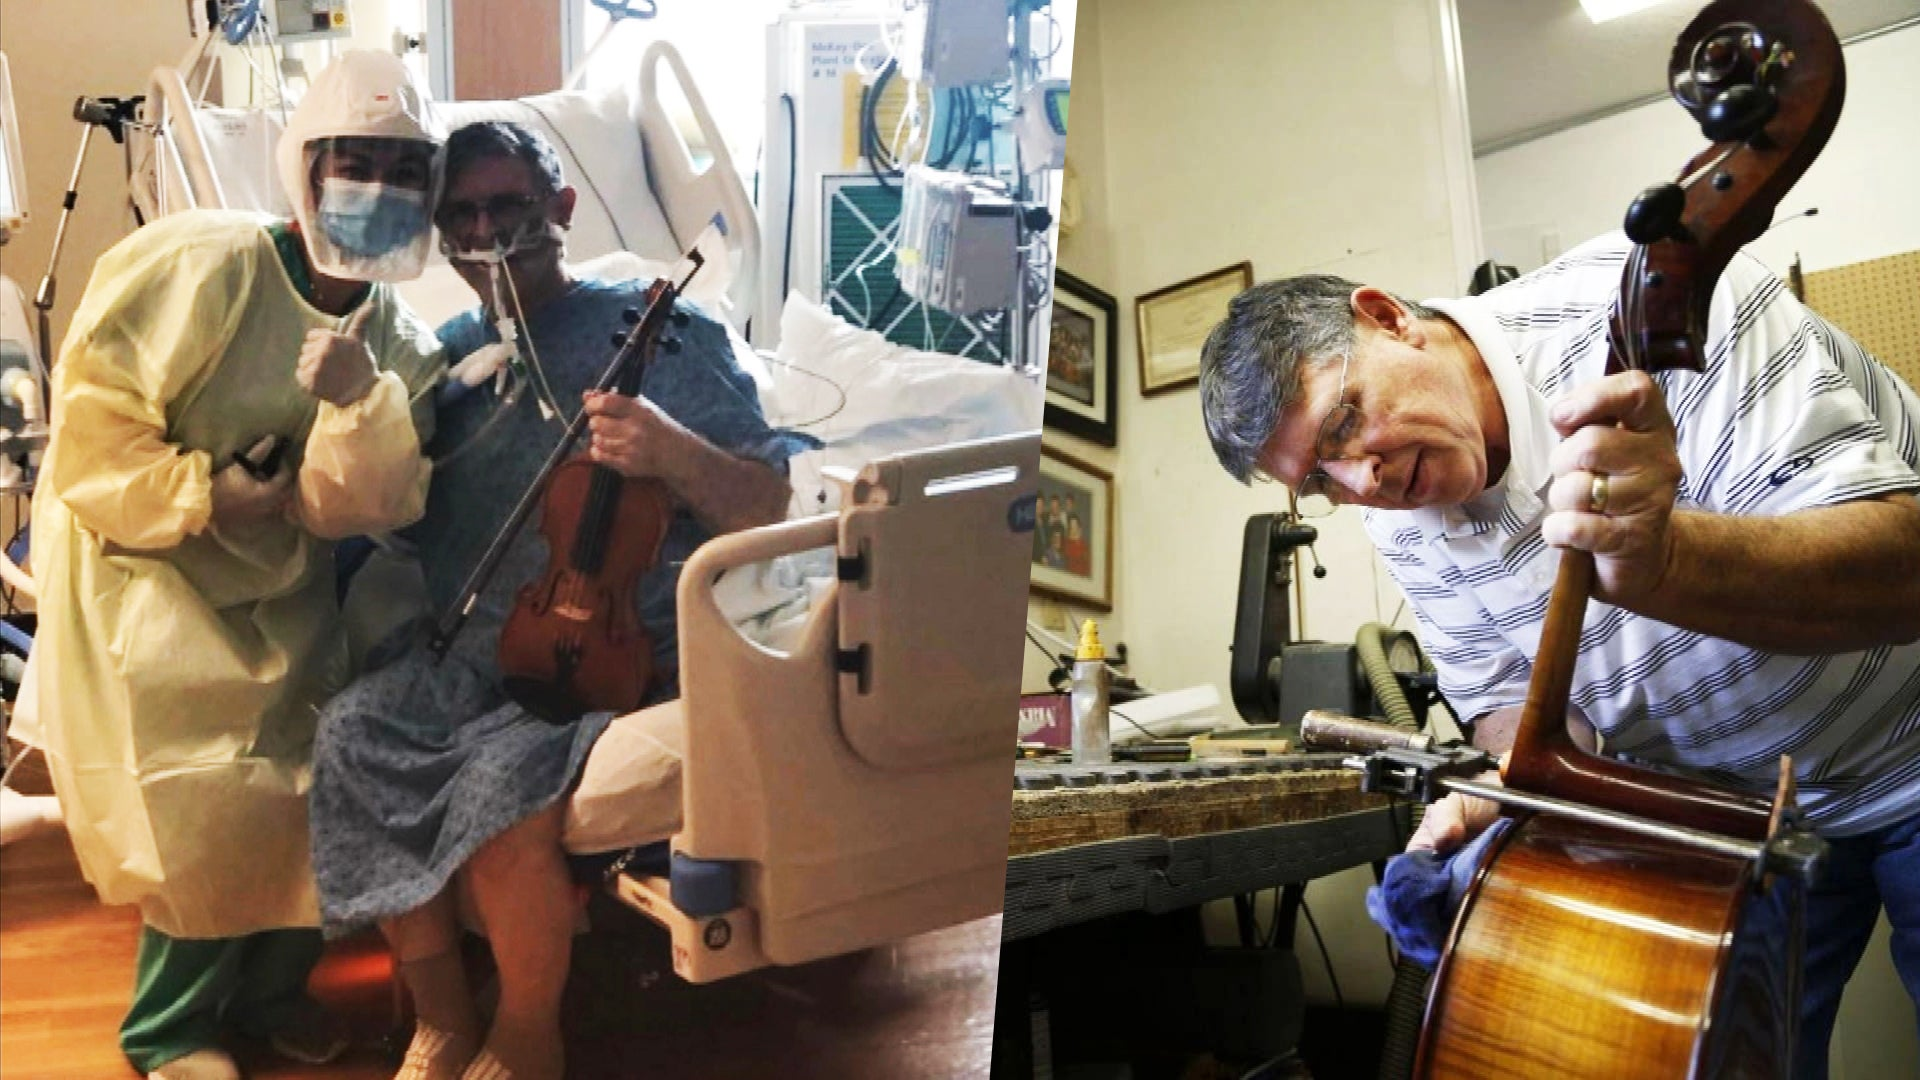 Patient on Ventilator With COVID-19 Plays Violin for Doctors and Nurses Saving His Life